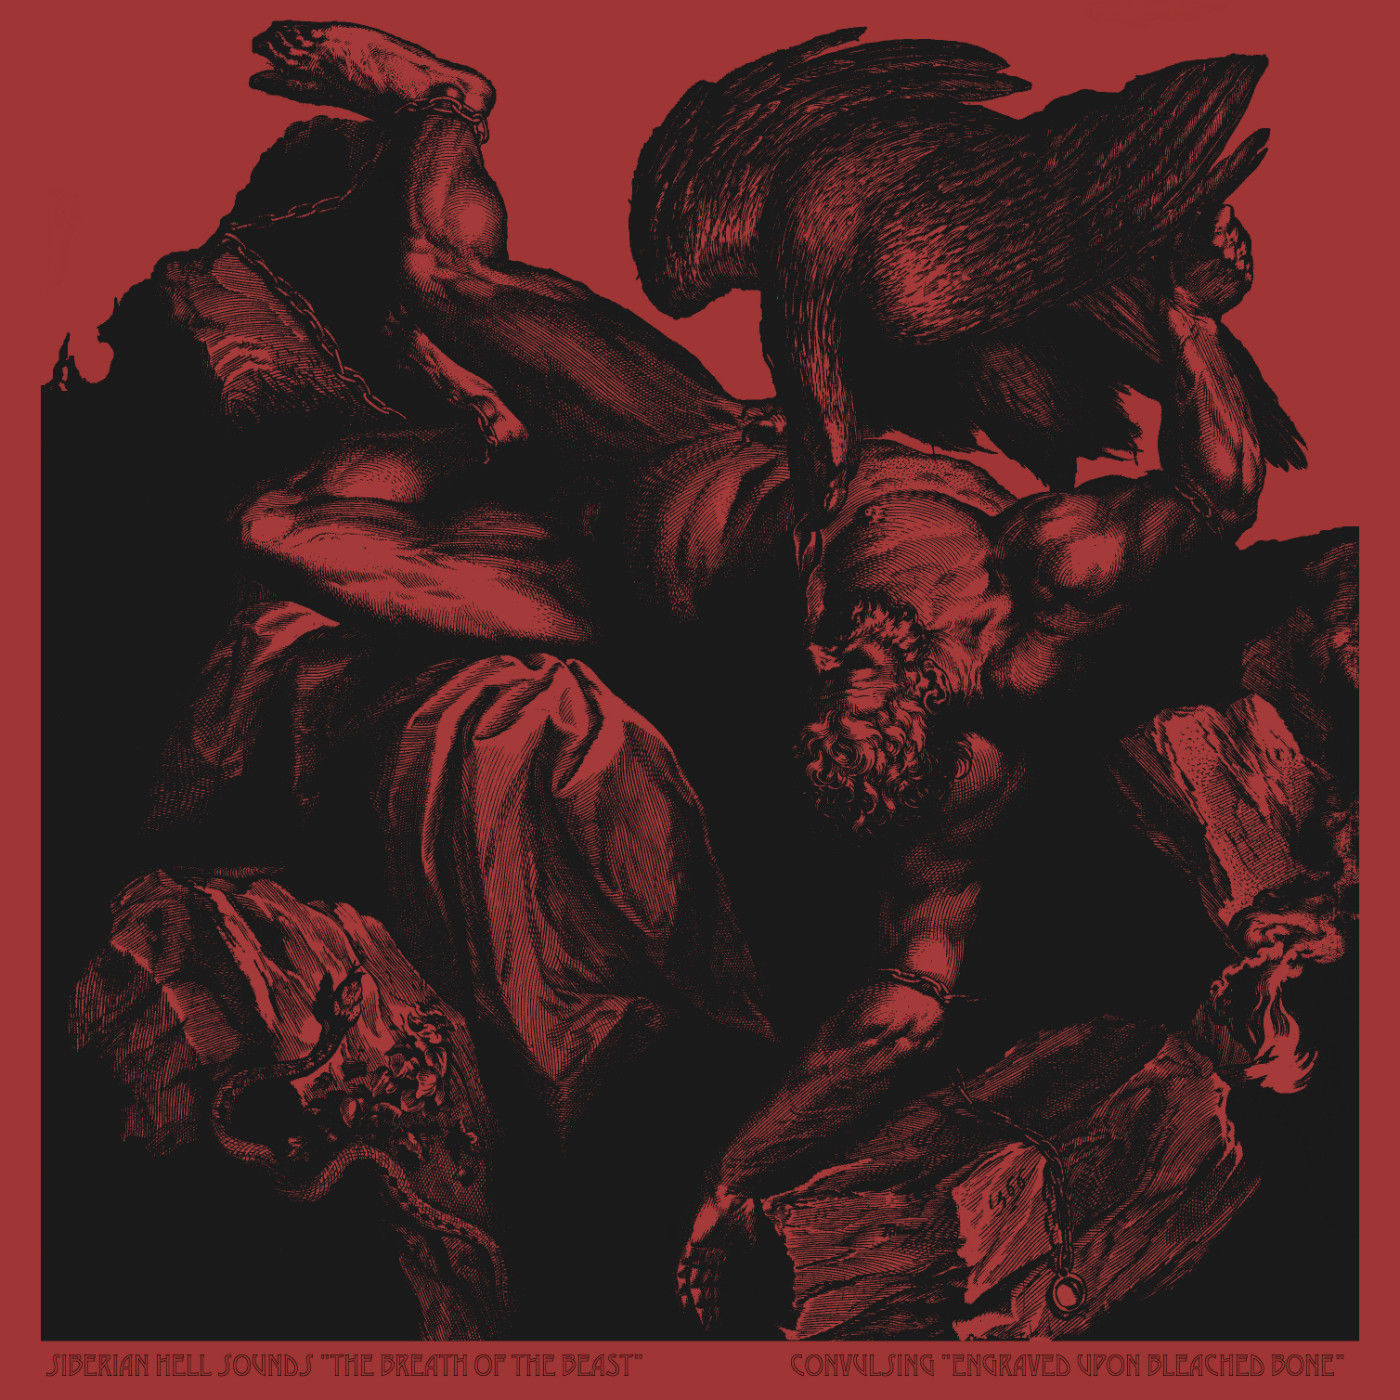 sold out: SIBERIAN HELL SOUNDS / CONVULSING SPLIT LP